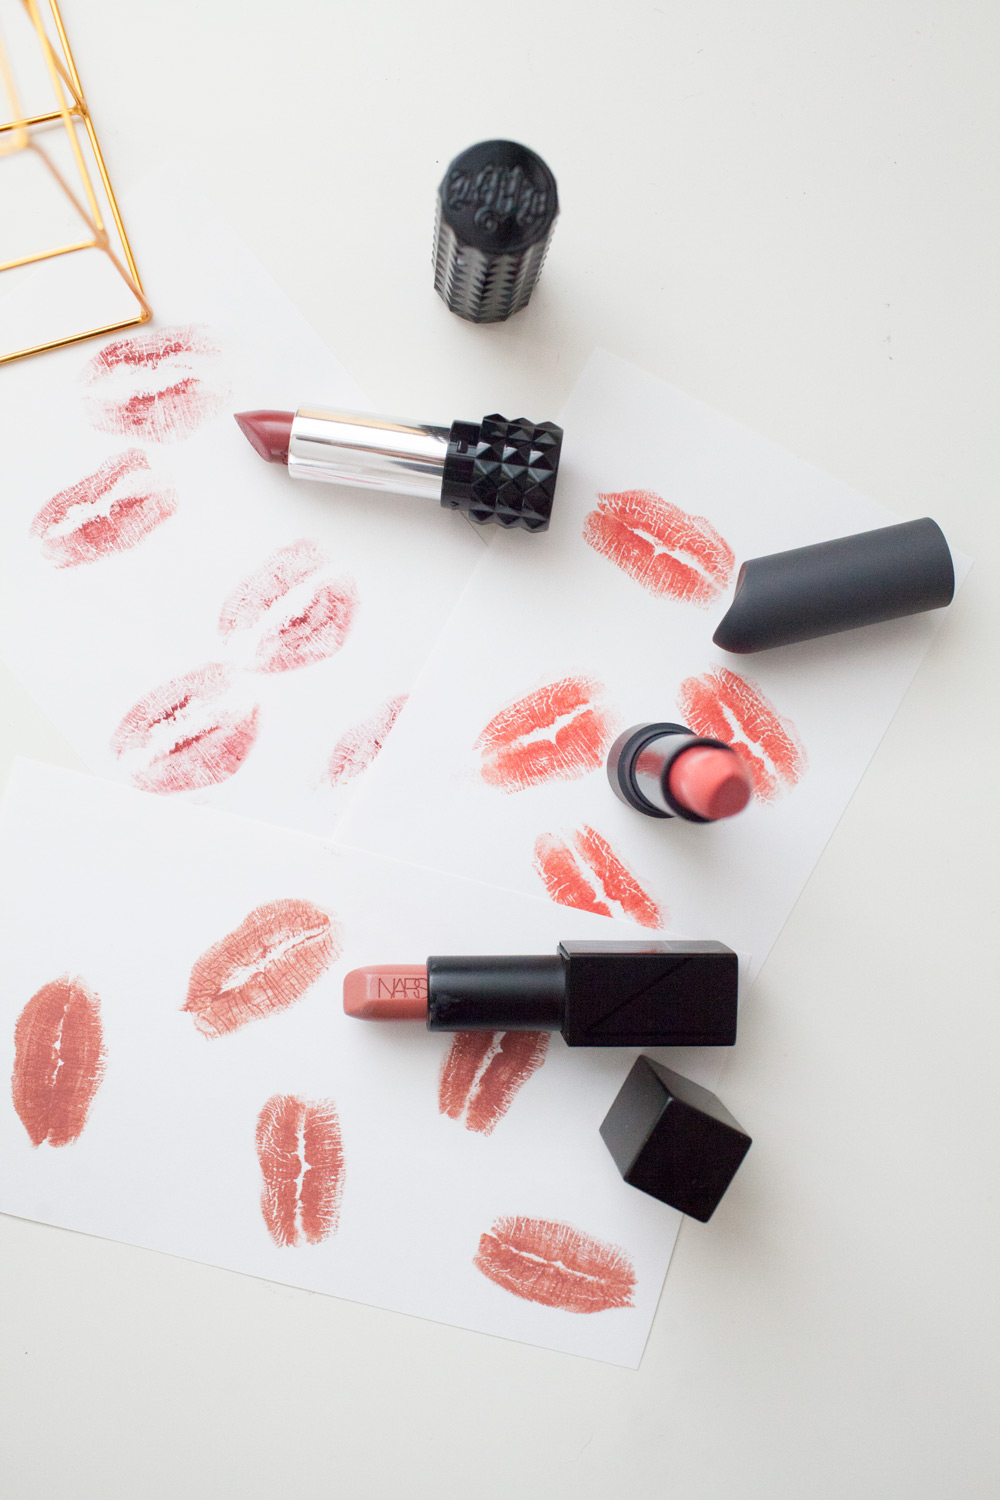 Lipstick reviews from Sephora National Lipstick Day Bite Gingersnap Kat Von D Lolita Nars BarBara Beauty Review Corporate Catwalk